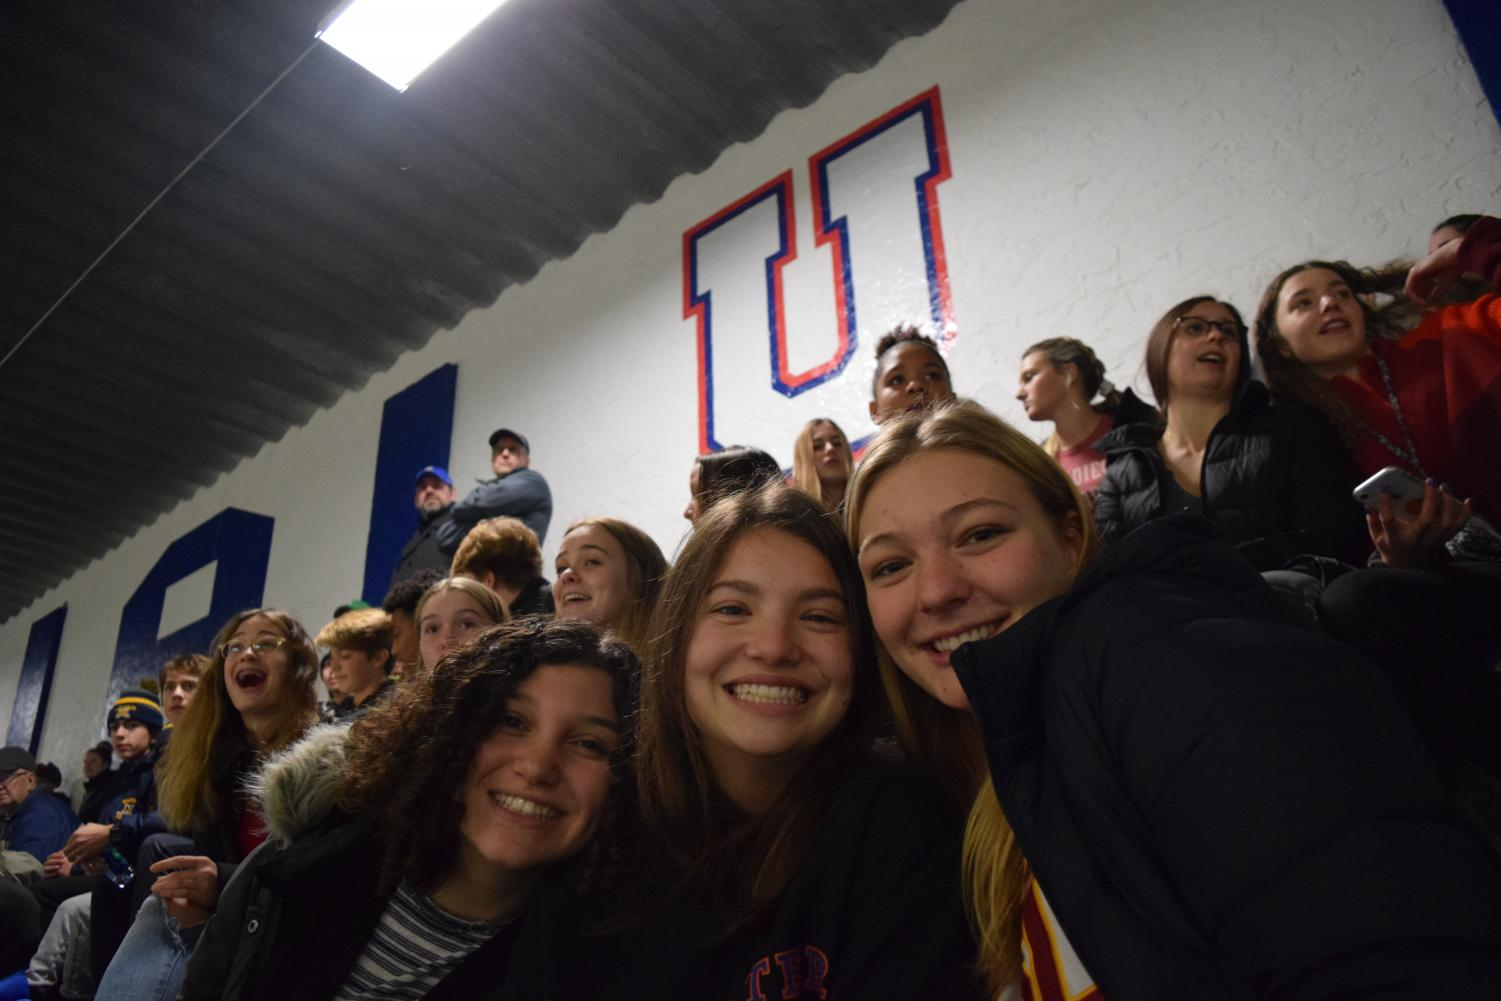 While a large number of fans can be a rare occurrence at sporting events, lots of students turned out to the Dec. 5 hockey game vs. rival Mahtomedi, demonstrating the atmospheric change that student support can bring. Here, Seniors Libby Cohen, Issy Weber and Helen Bartlett are all smiles at the game.